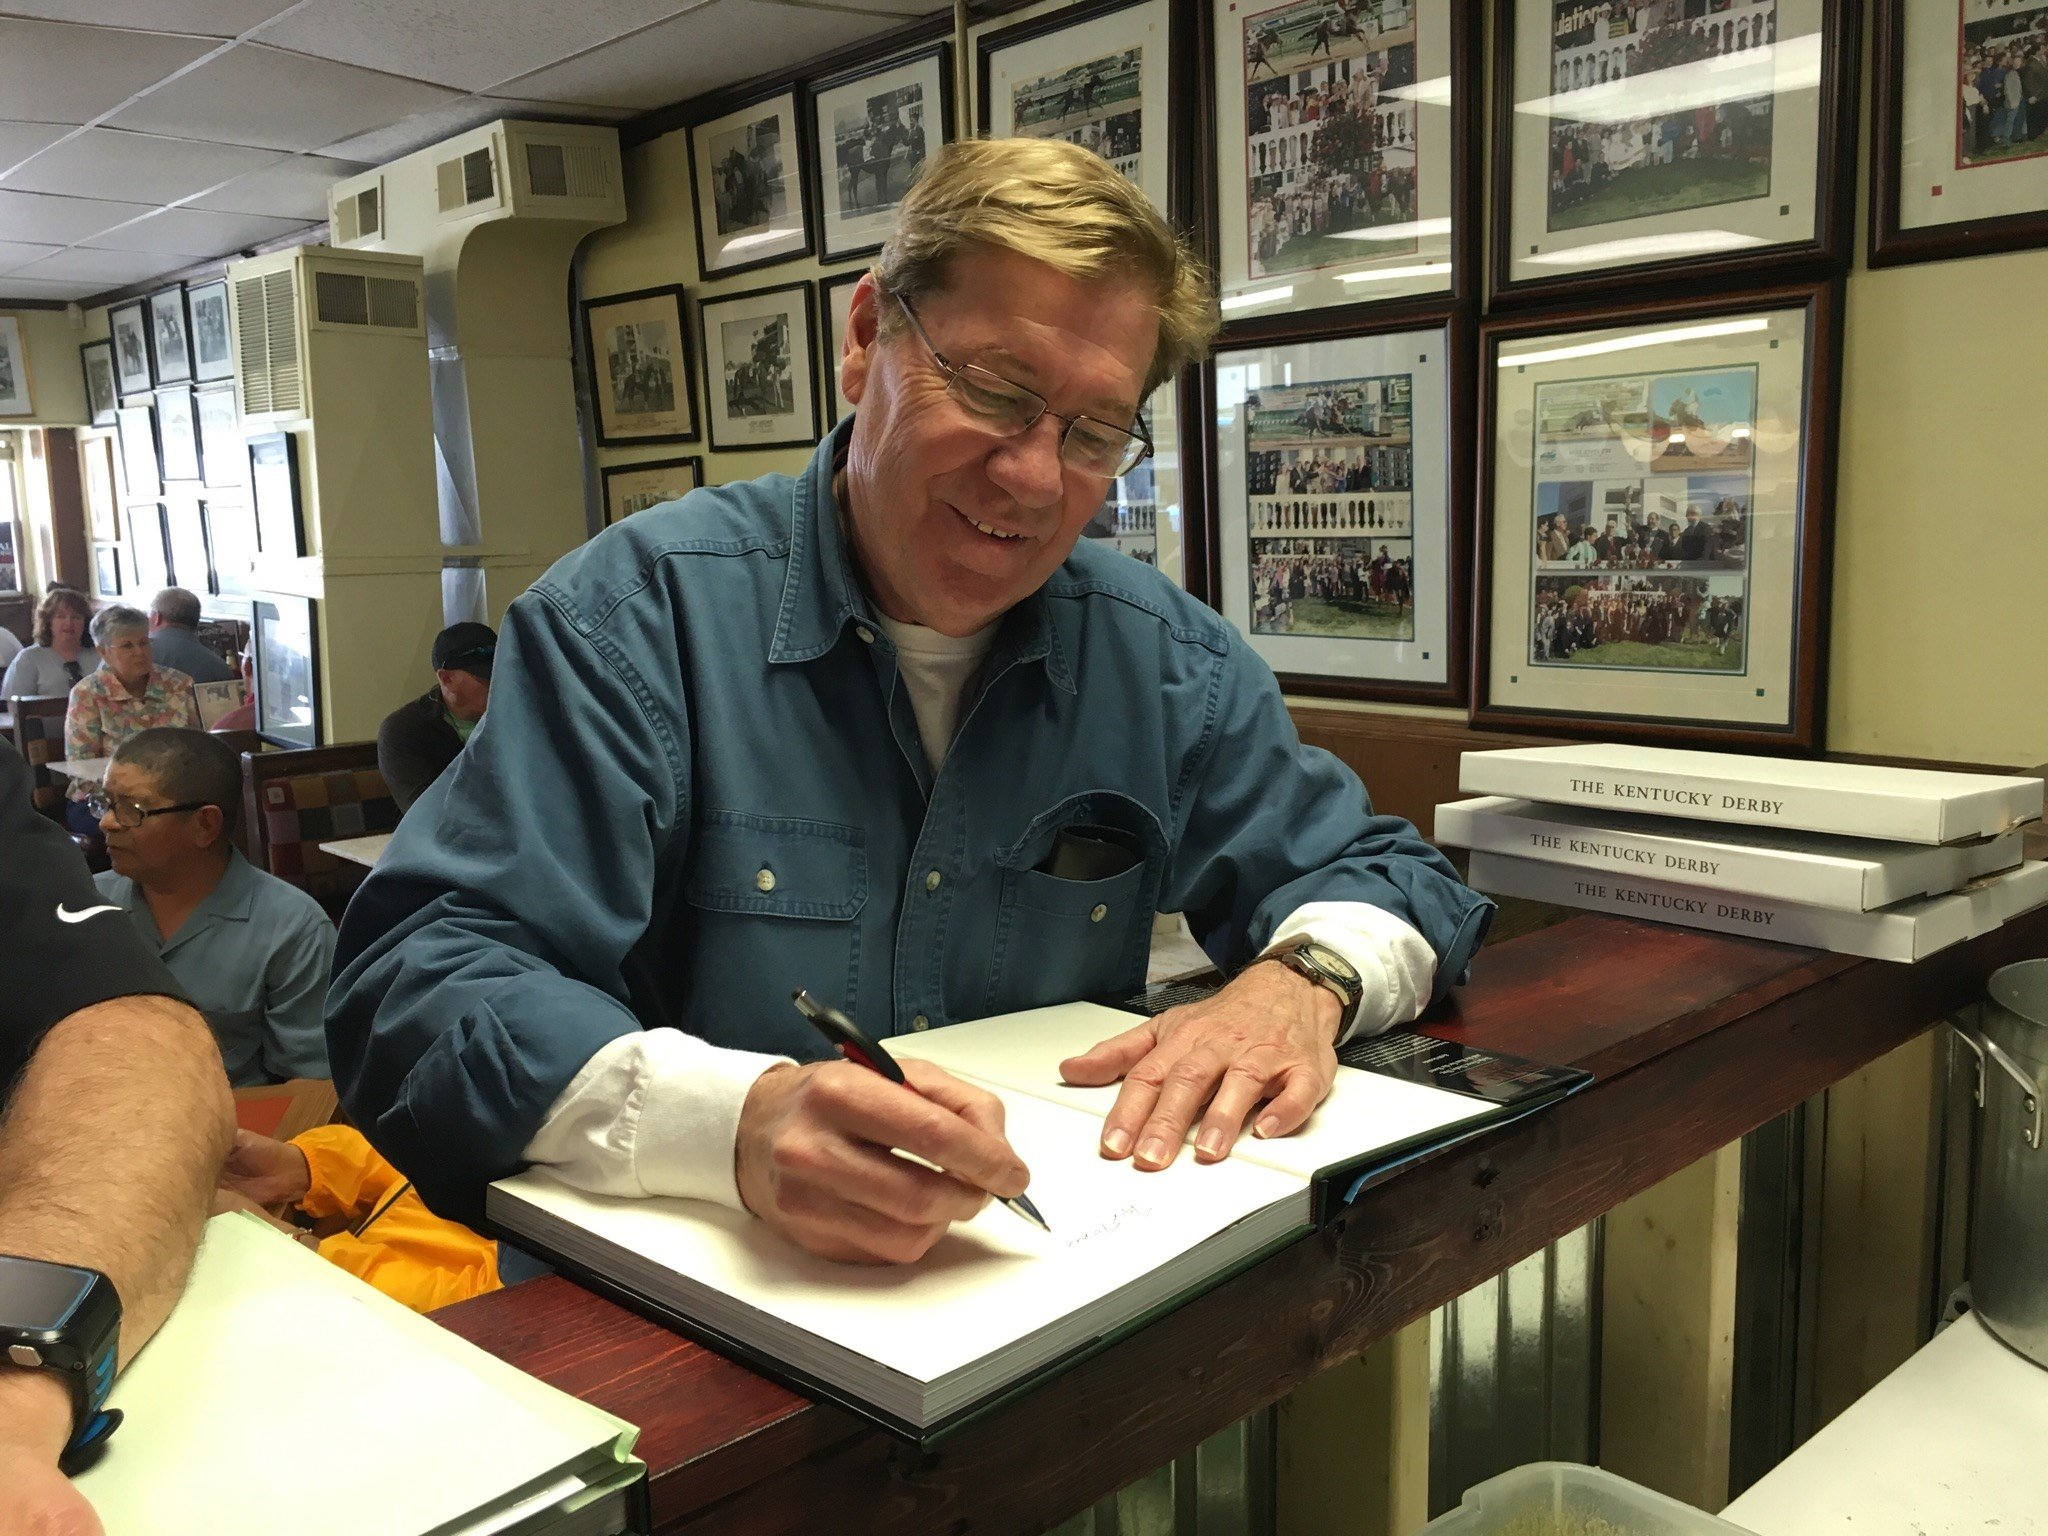 racing historian Bill Doolittle will be signing copies of his new book The Kentucky Derby, the first tech-engaged book written about the world's greatest race (Photo by Toni Konz, WDRB News)